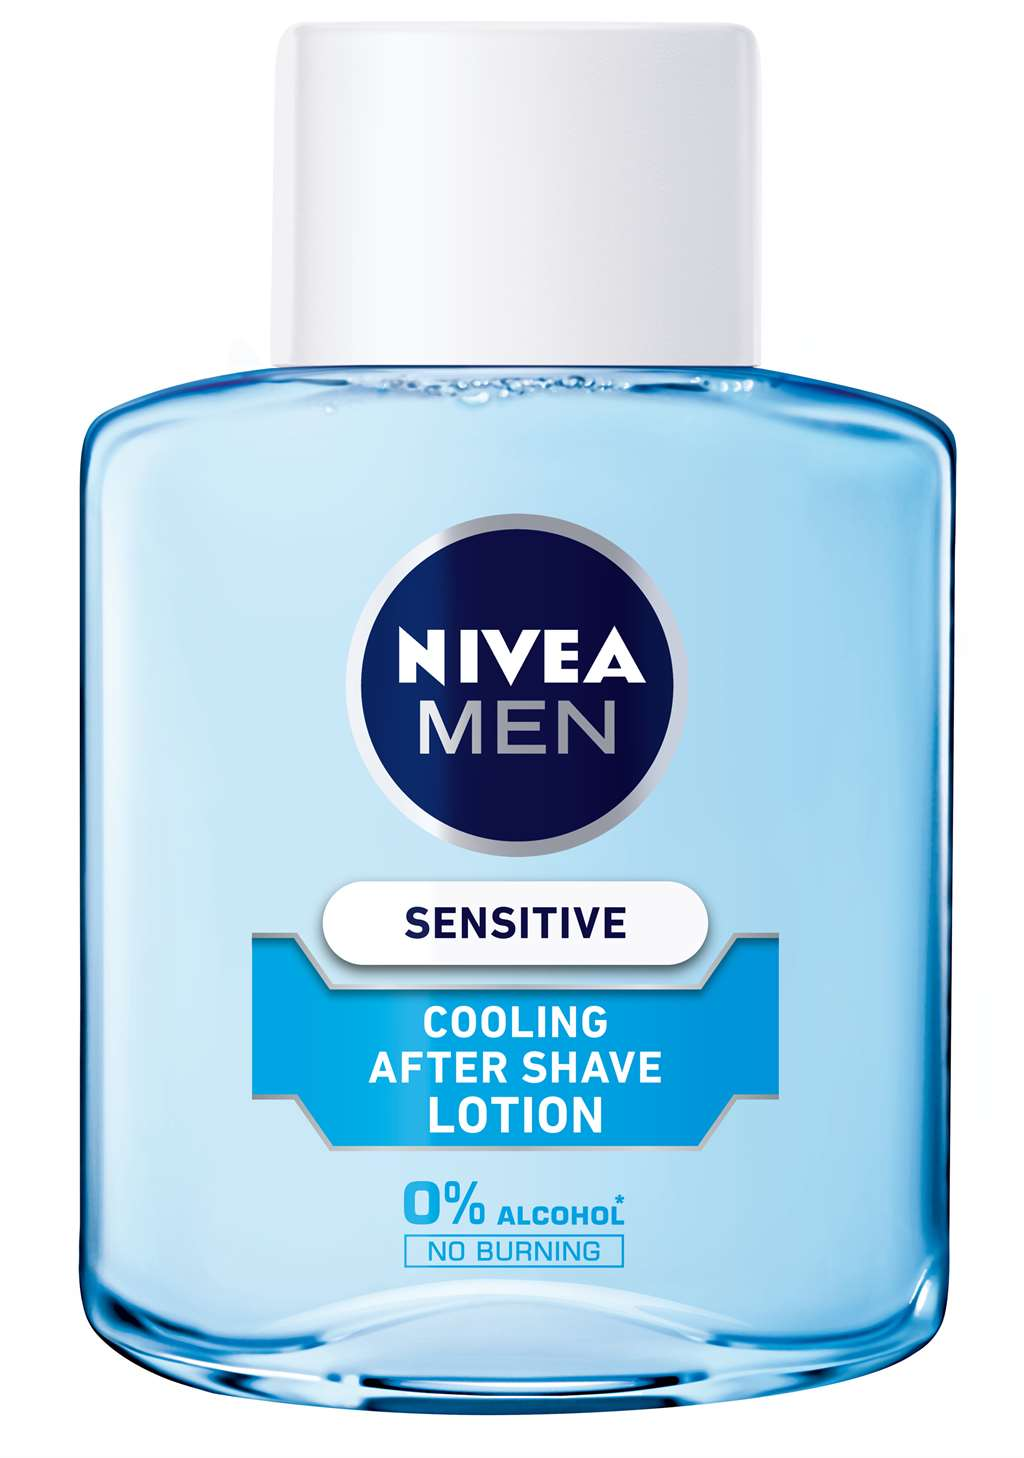 nivea_ men_sensitive_cooling_borotvalkozas_utani_lotion